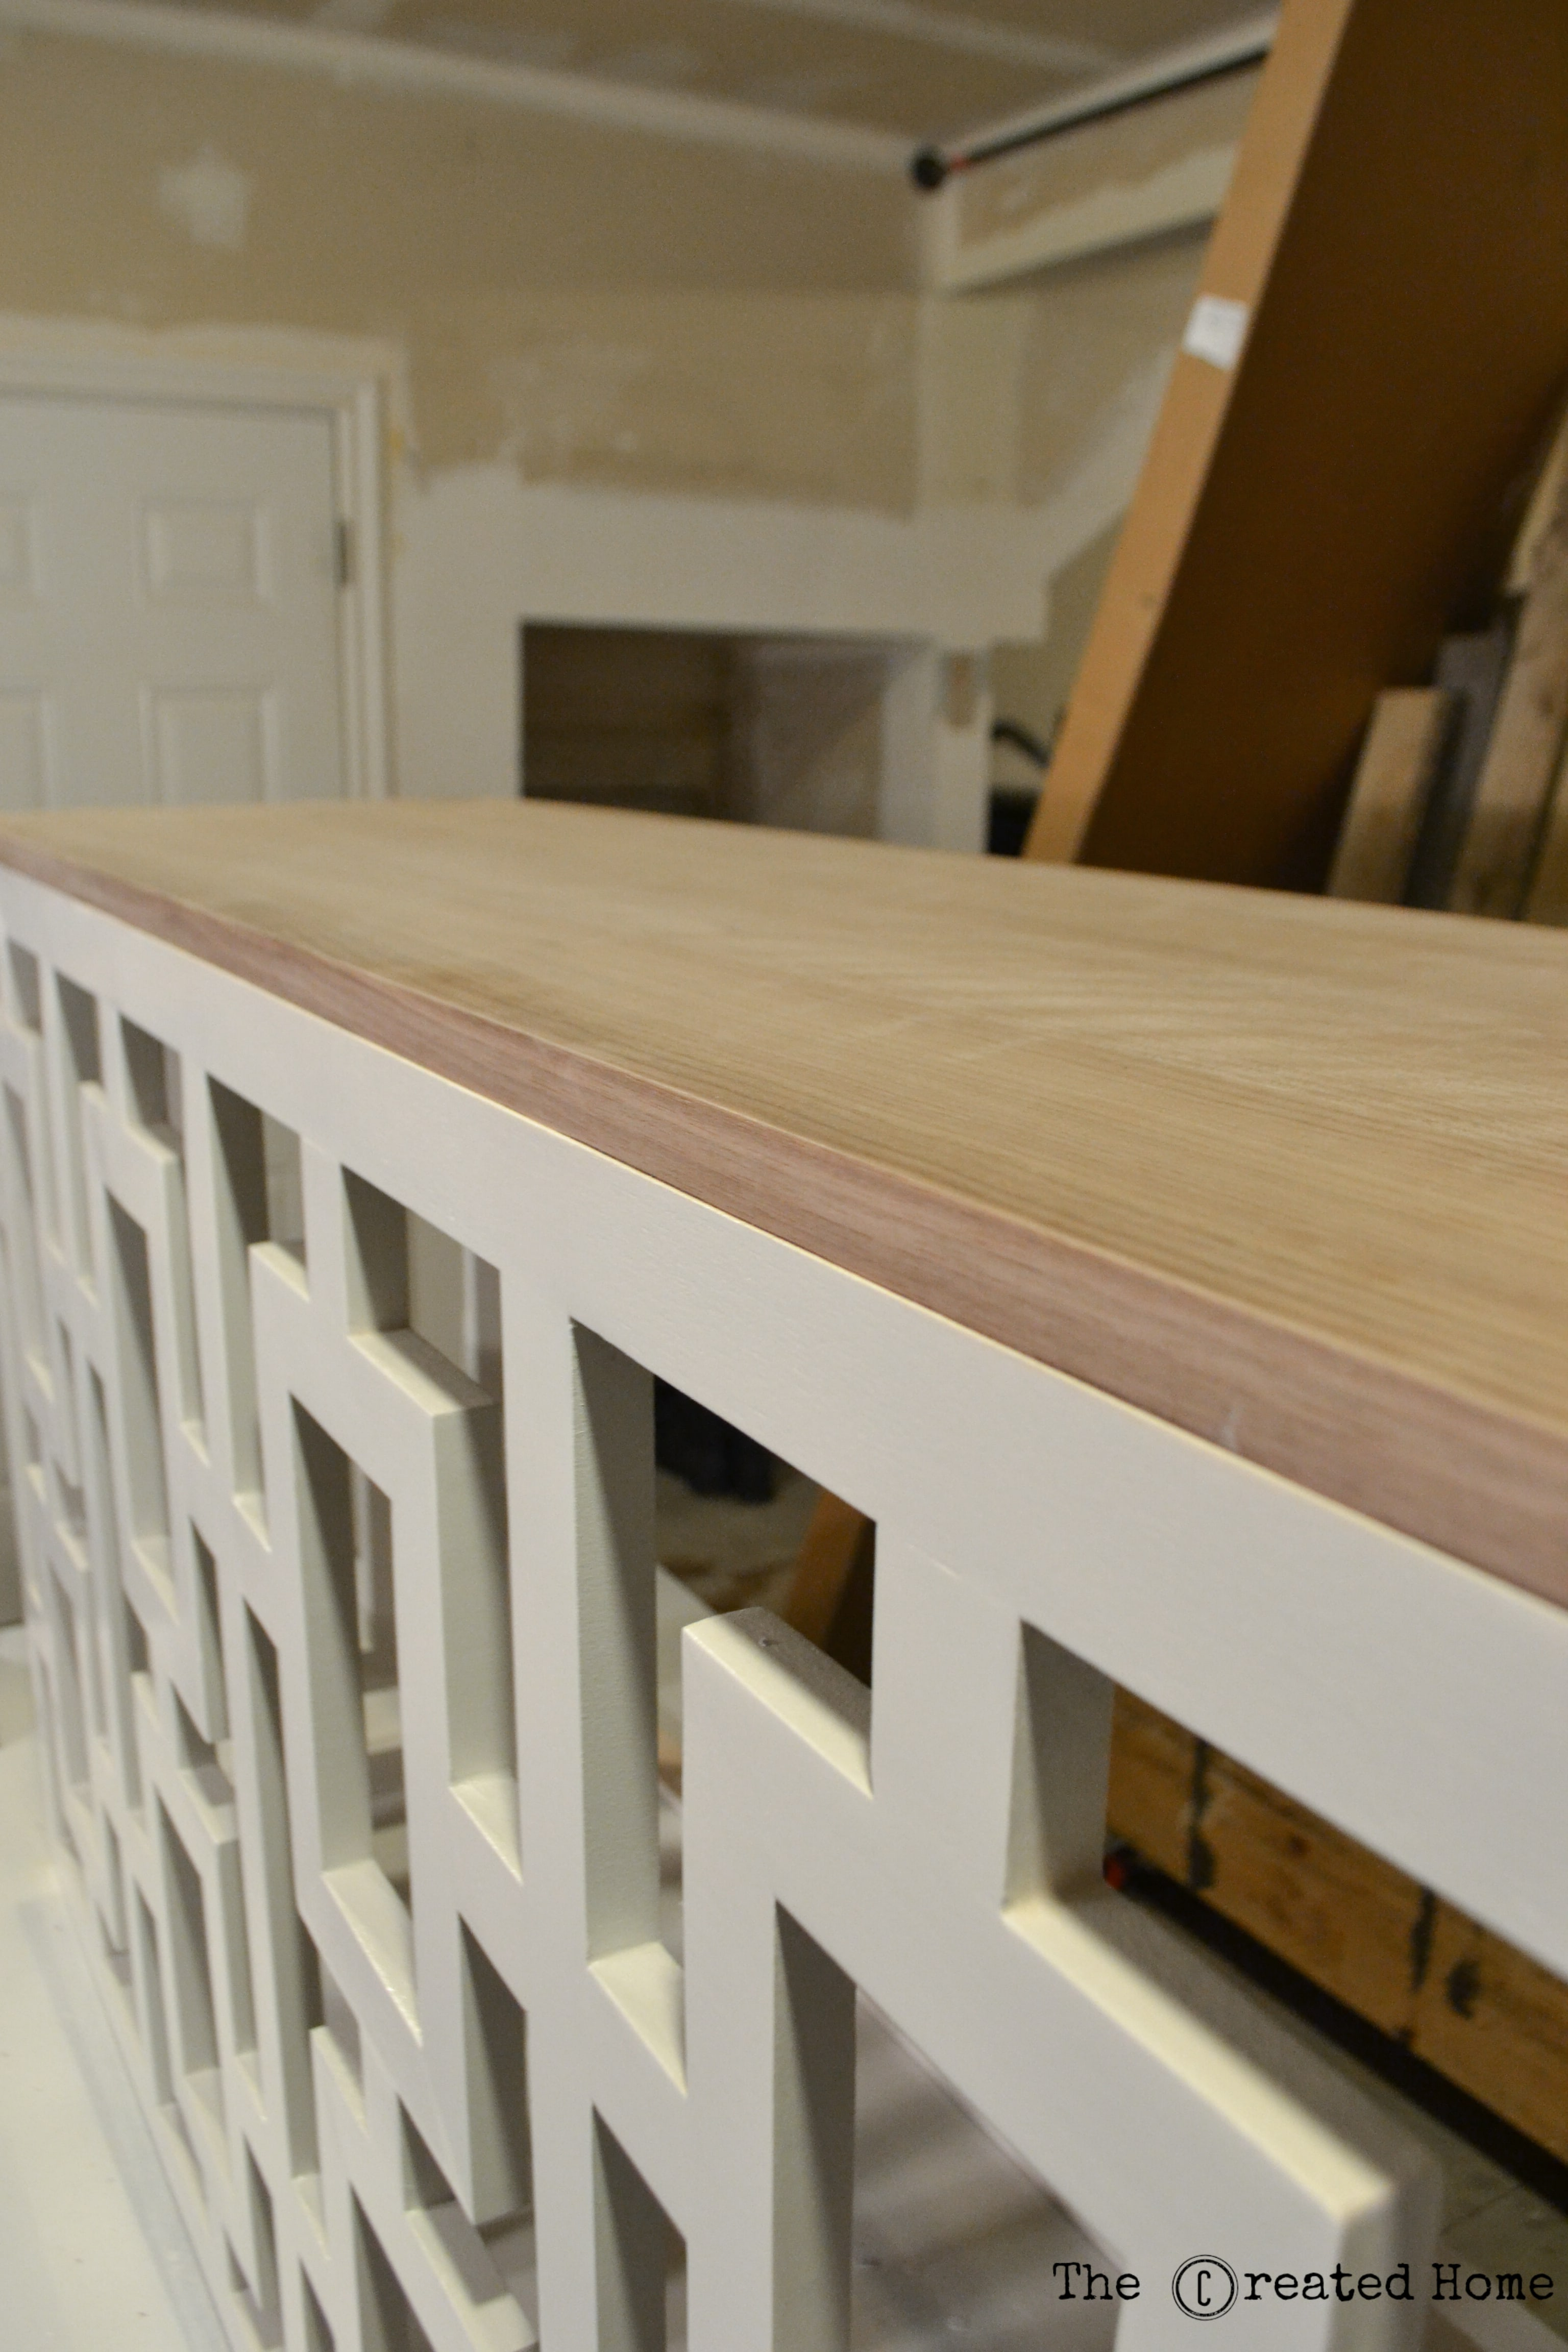 16 DIY Walnut Veneer Plywood Console Table With Fretwork Sides By The Created Home Featured & Remodelaholic | DIY Fretwork Table with Walnut Plywood Top